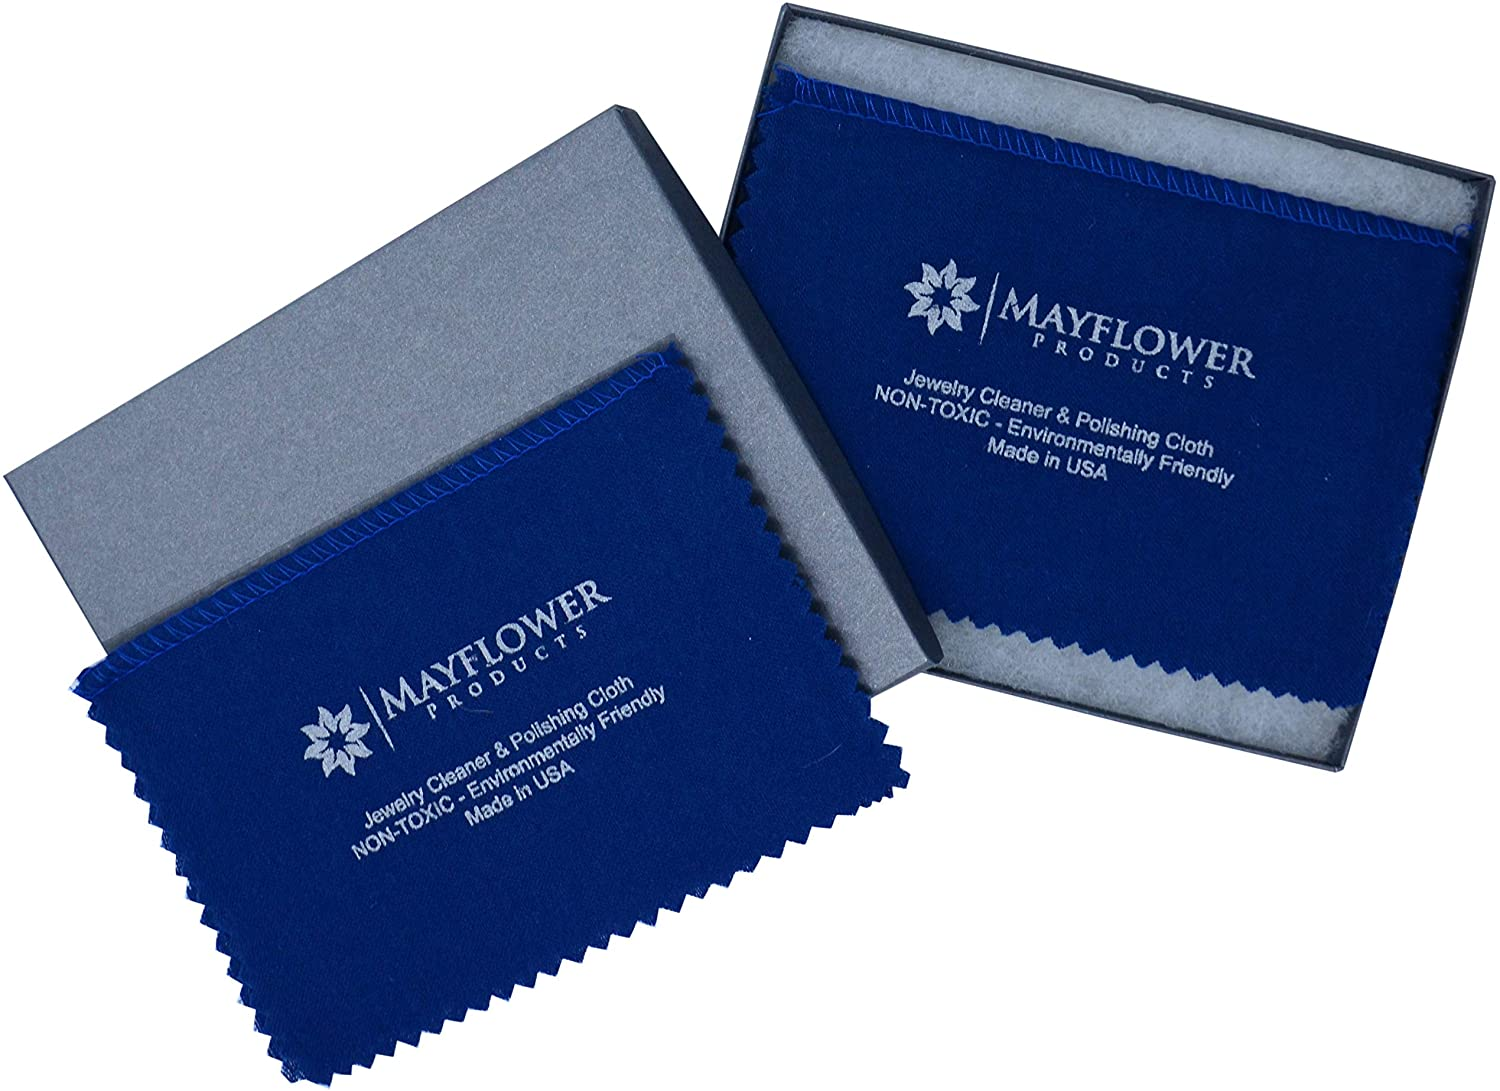 Mayflower jewelry polishing cloths